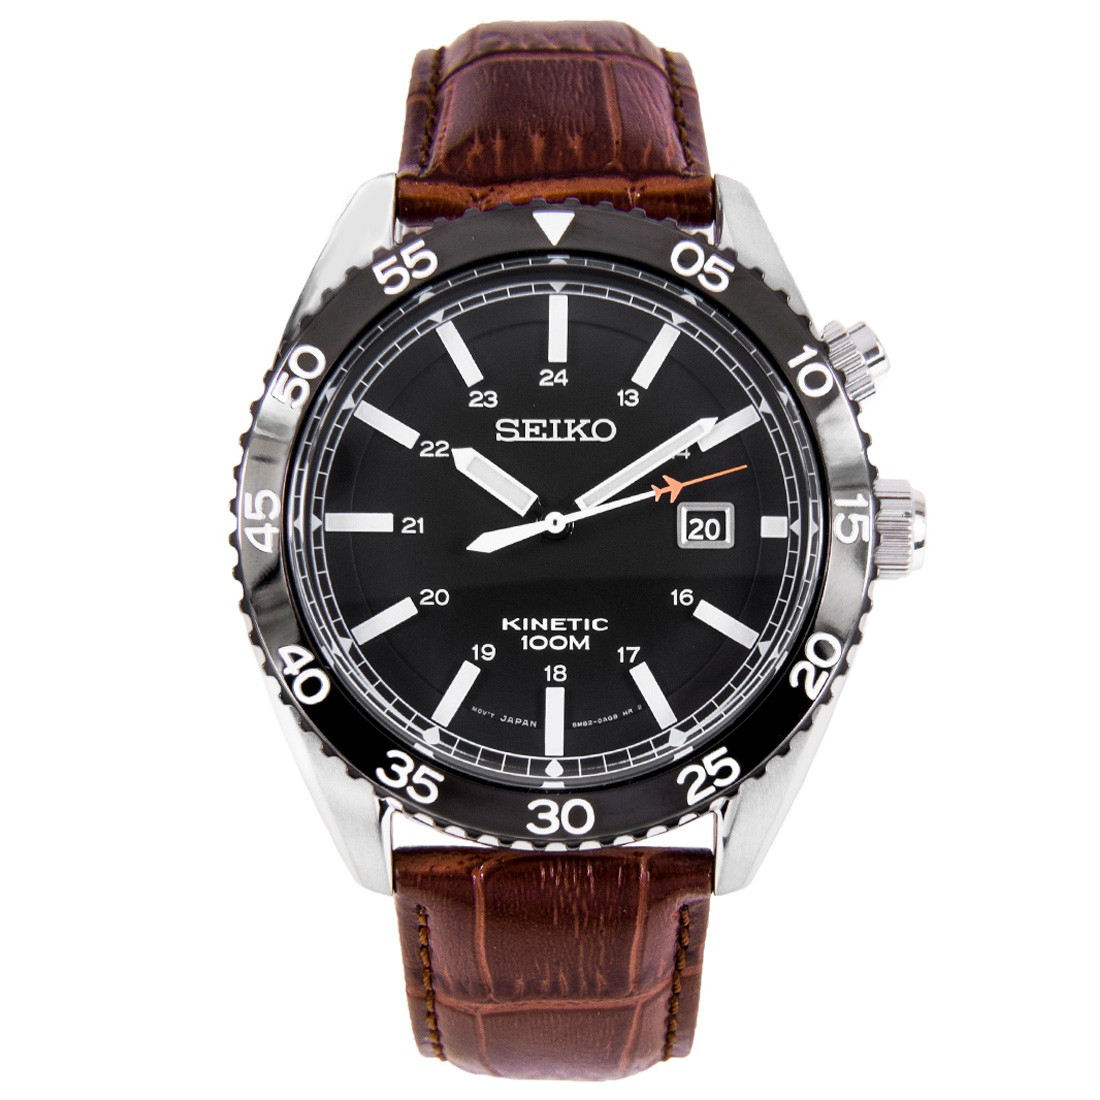 Gents/Mens Stainless Steel Seiko Kinetic Watch on leather Strap, 100M Water Resistant SKA617P2